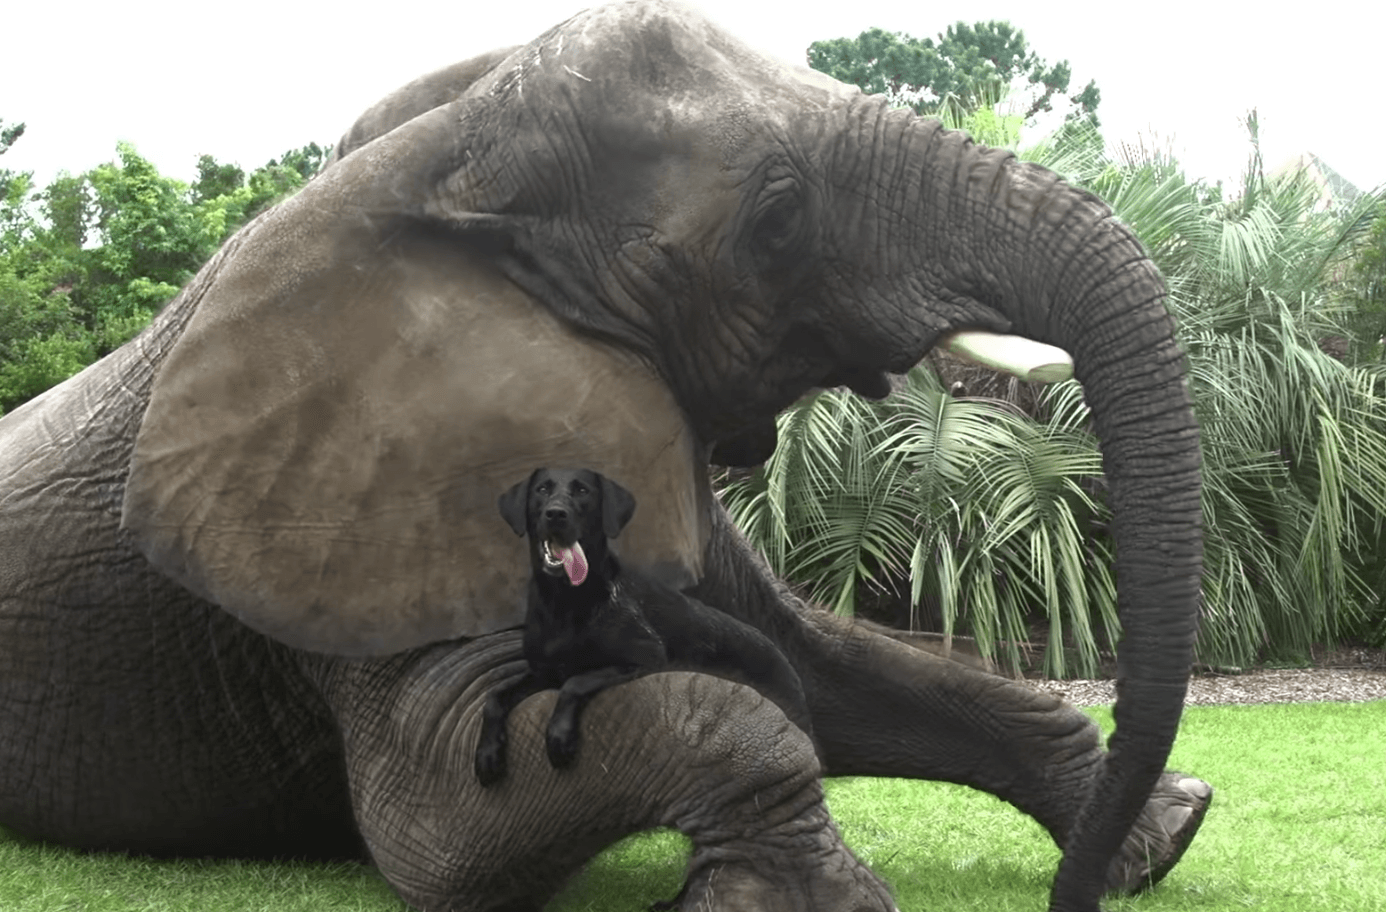 Elephant and labrador